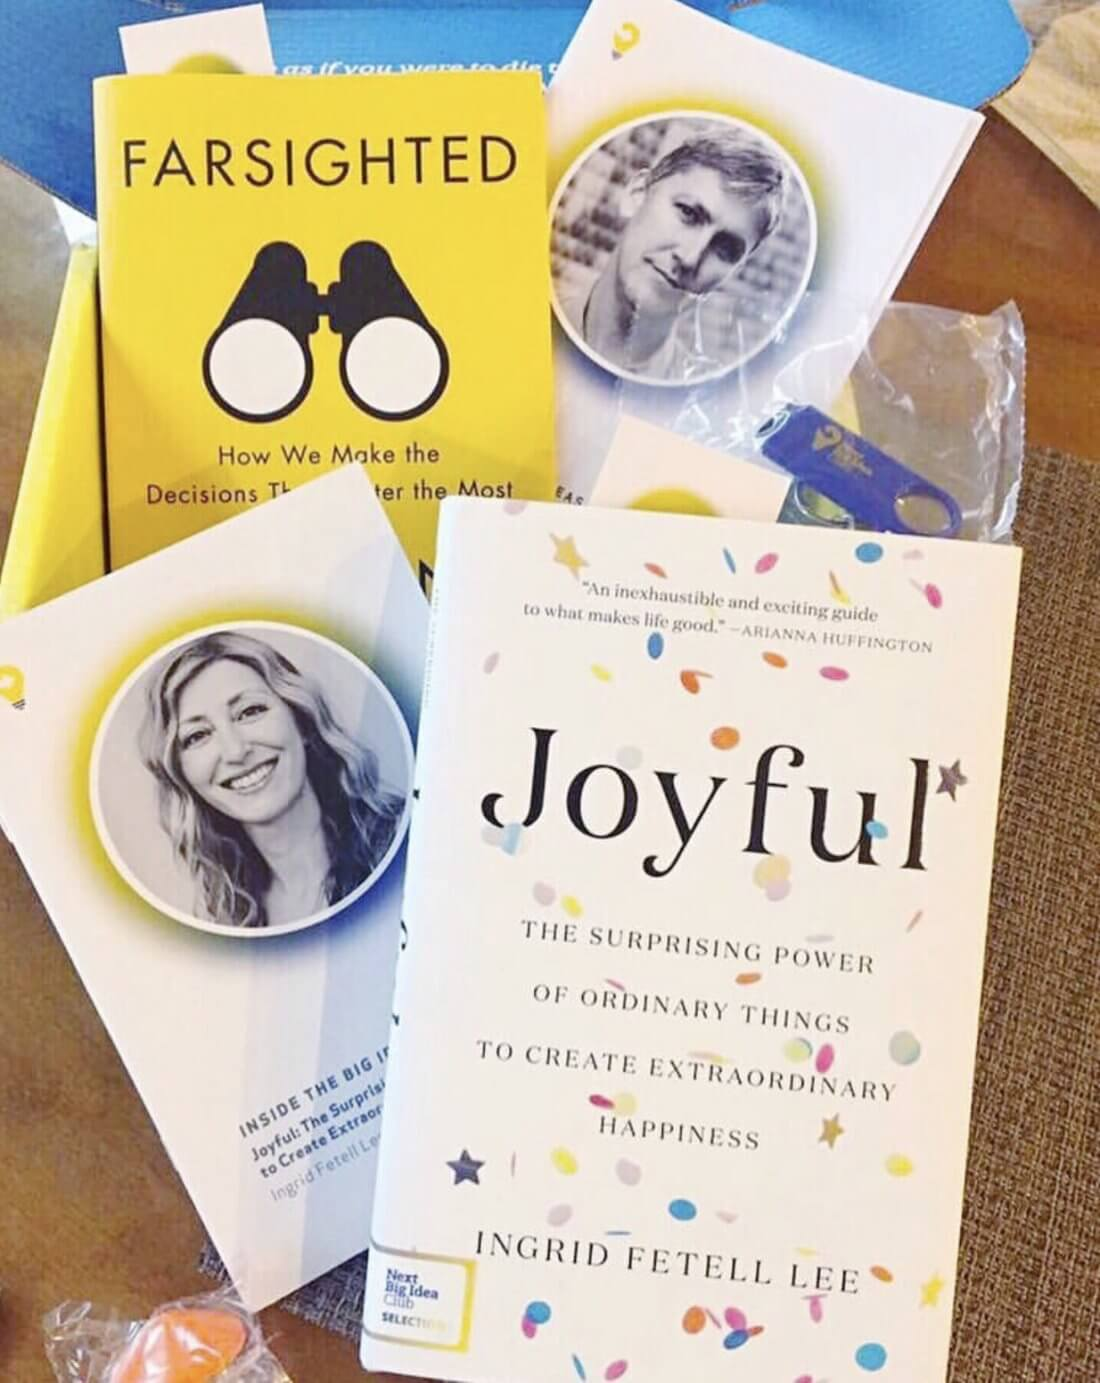 Picture of the next big idea club box, including Joyful and Farsighted